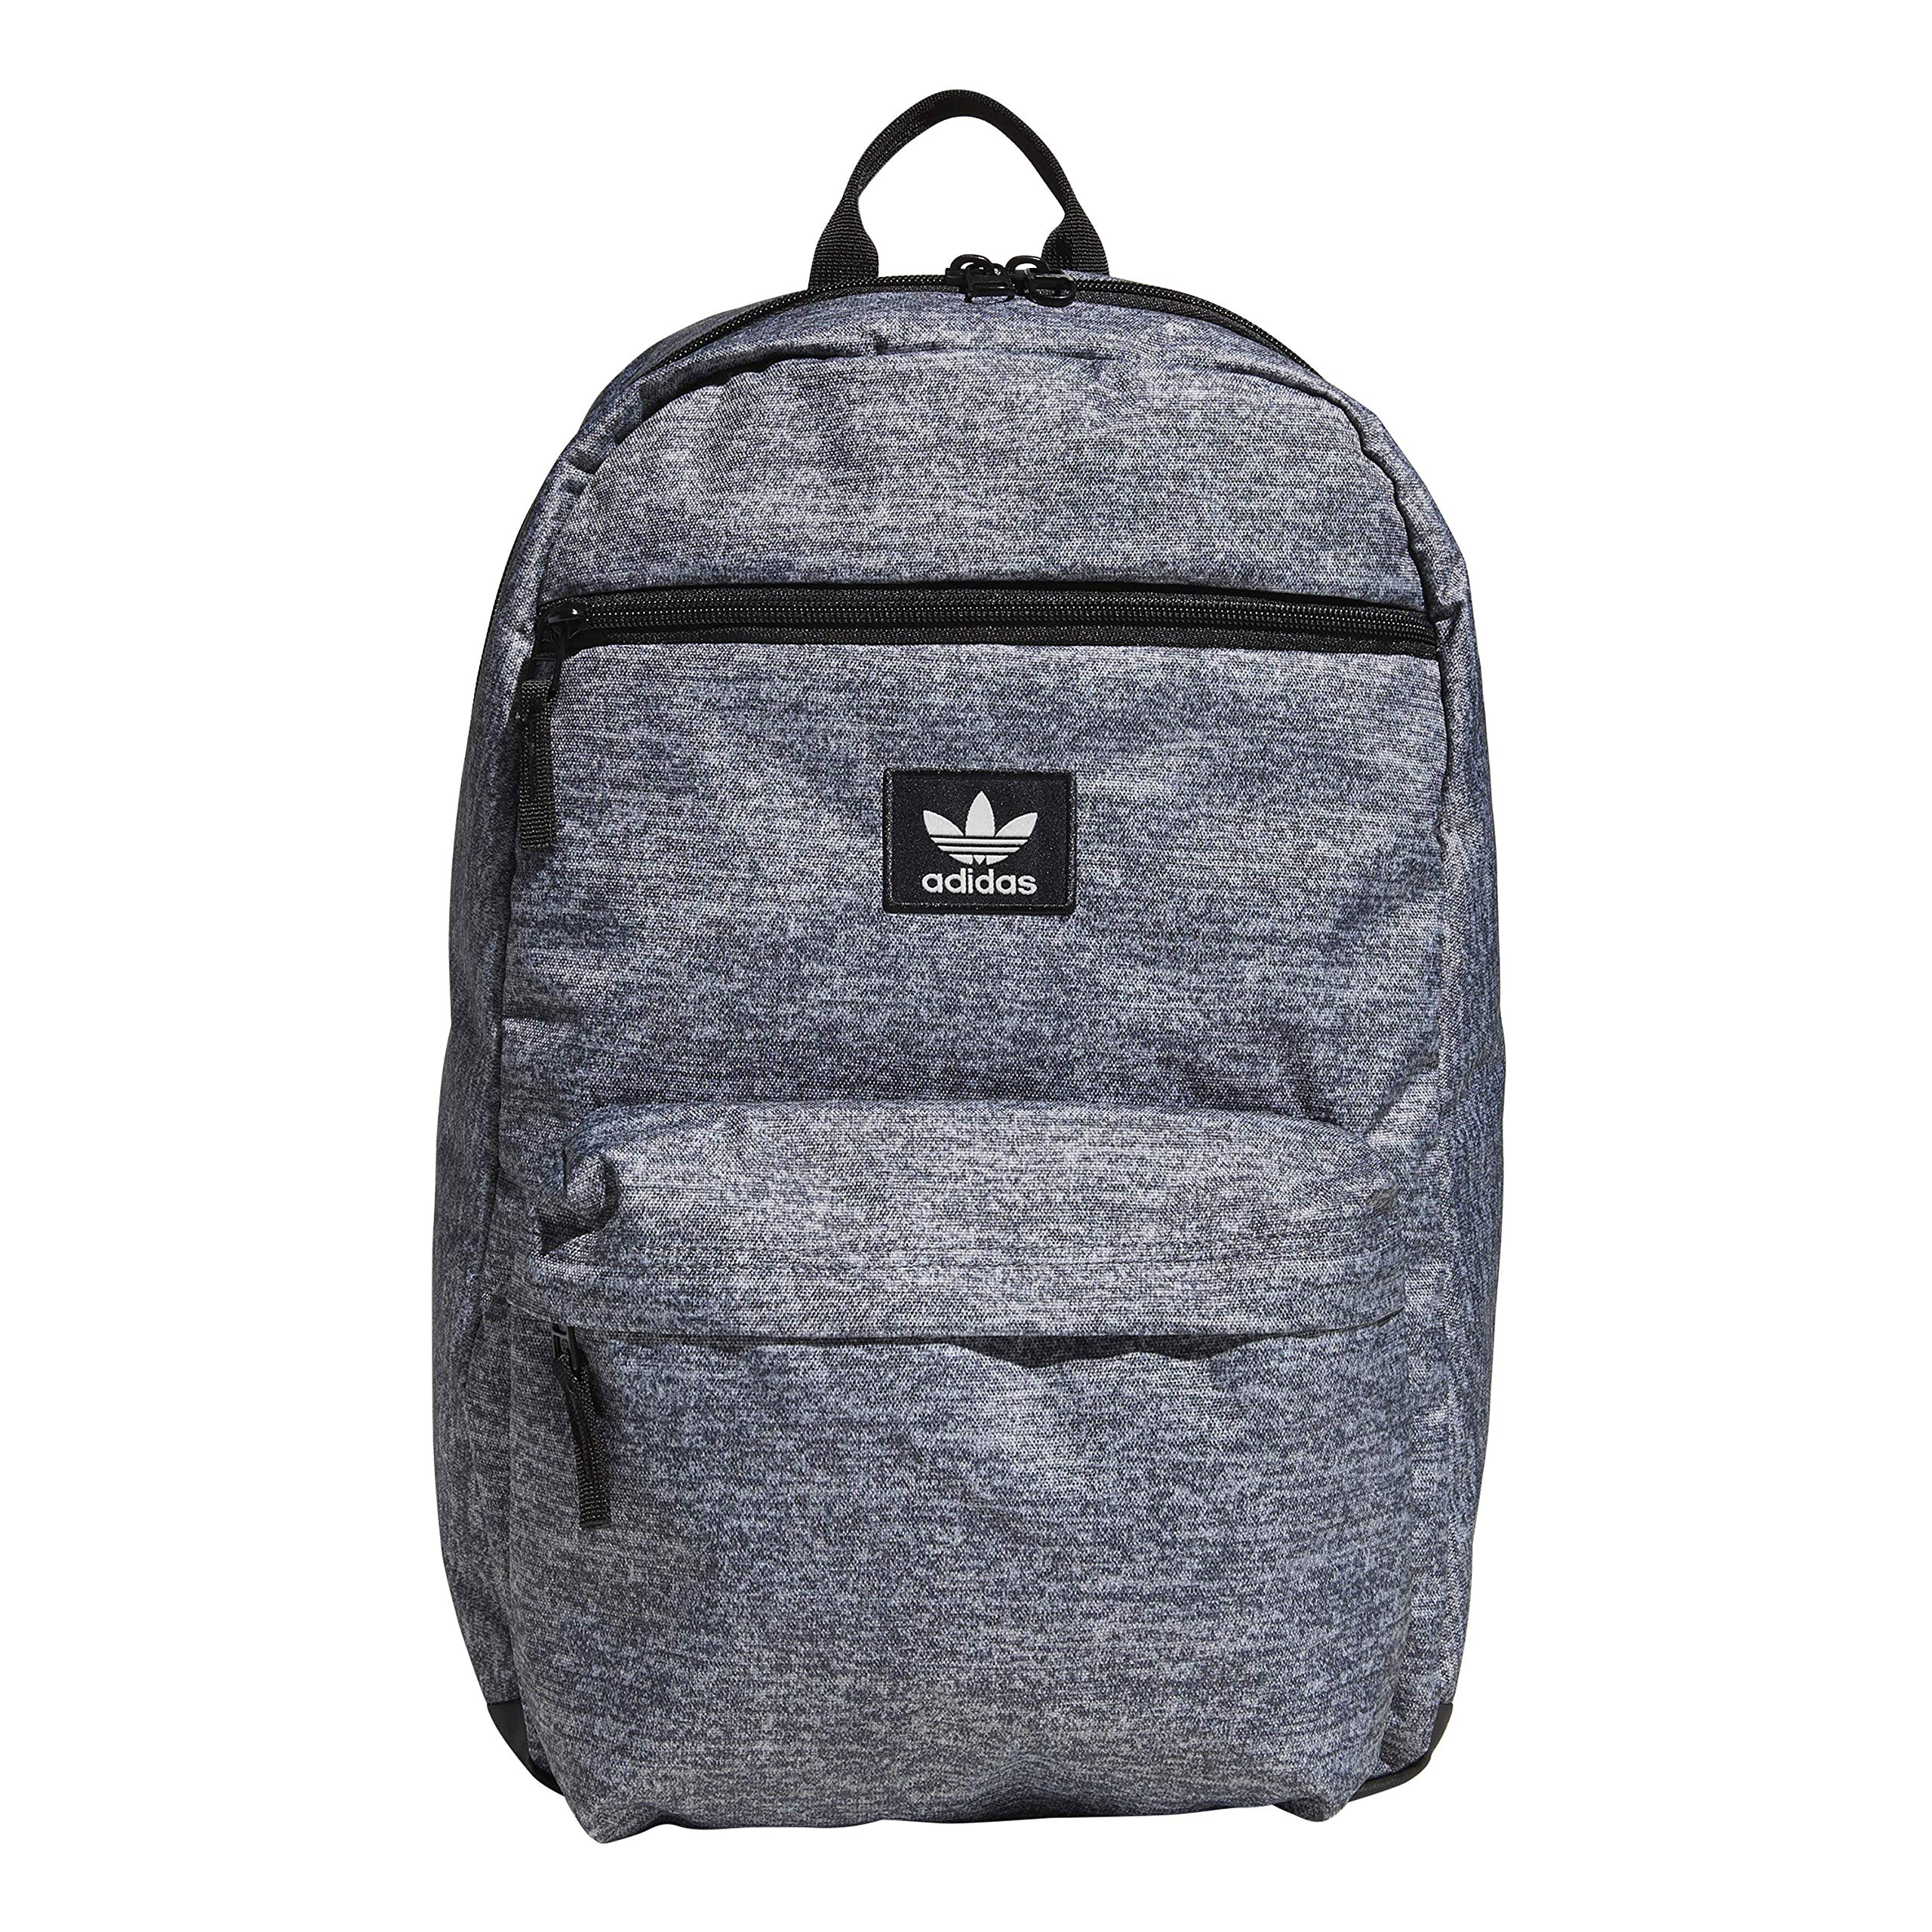 adidas Originals Unisex National Backpack, Onix Jersey/Black, ONE SIZE by adidas